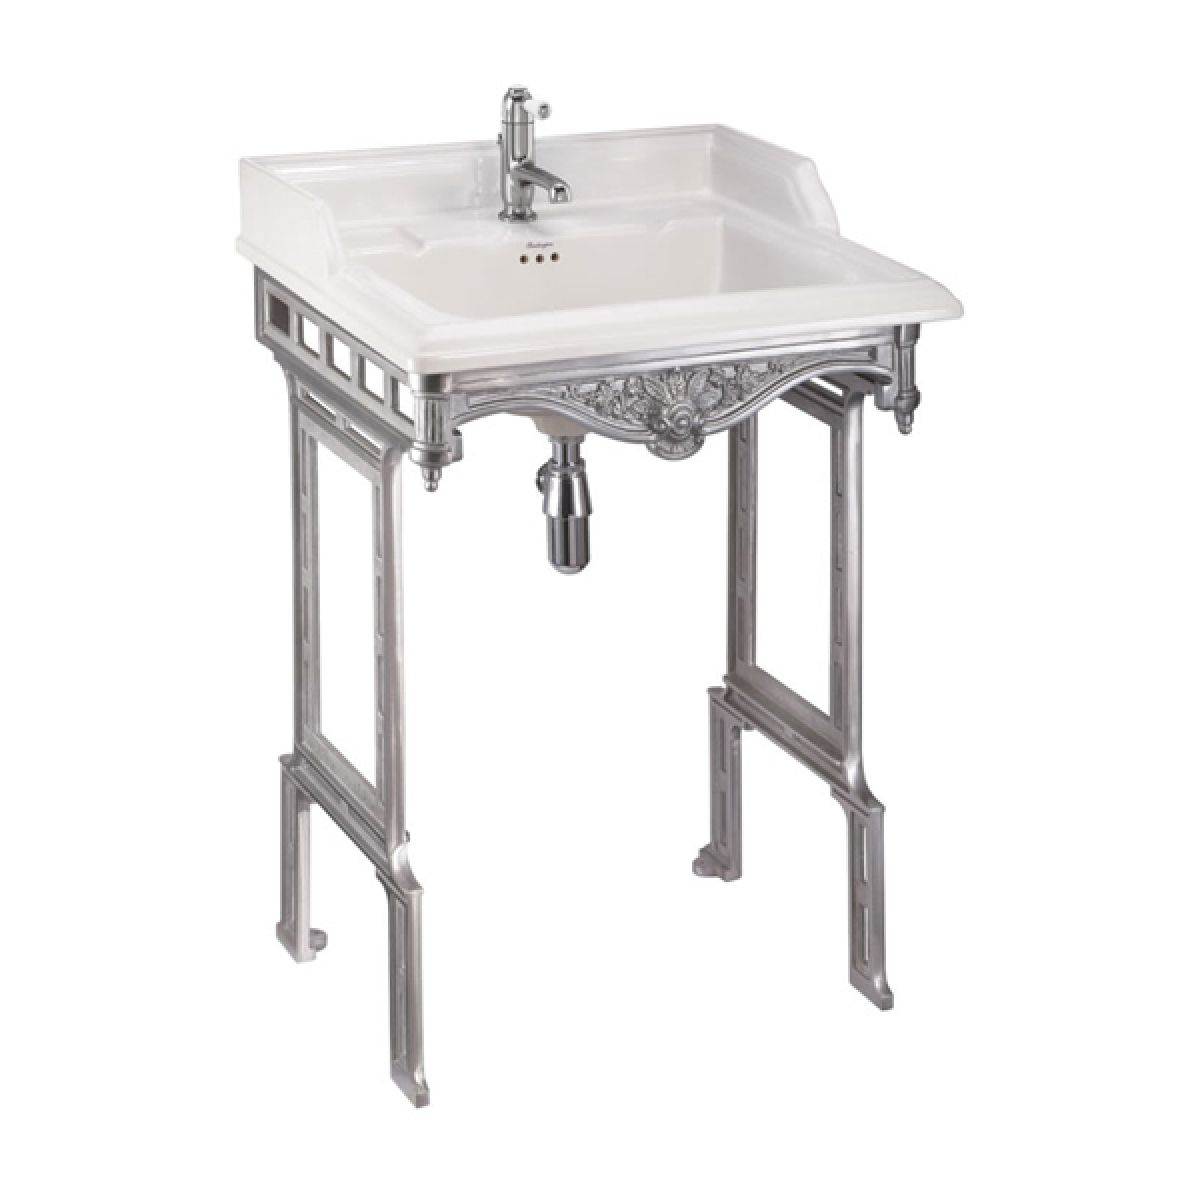 Burlington Classic Square Basin with Aluminium Stand 650mm